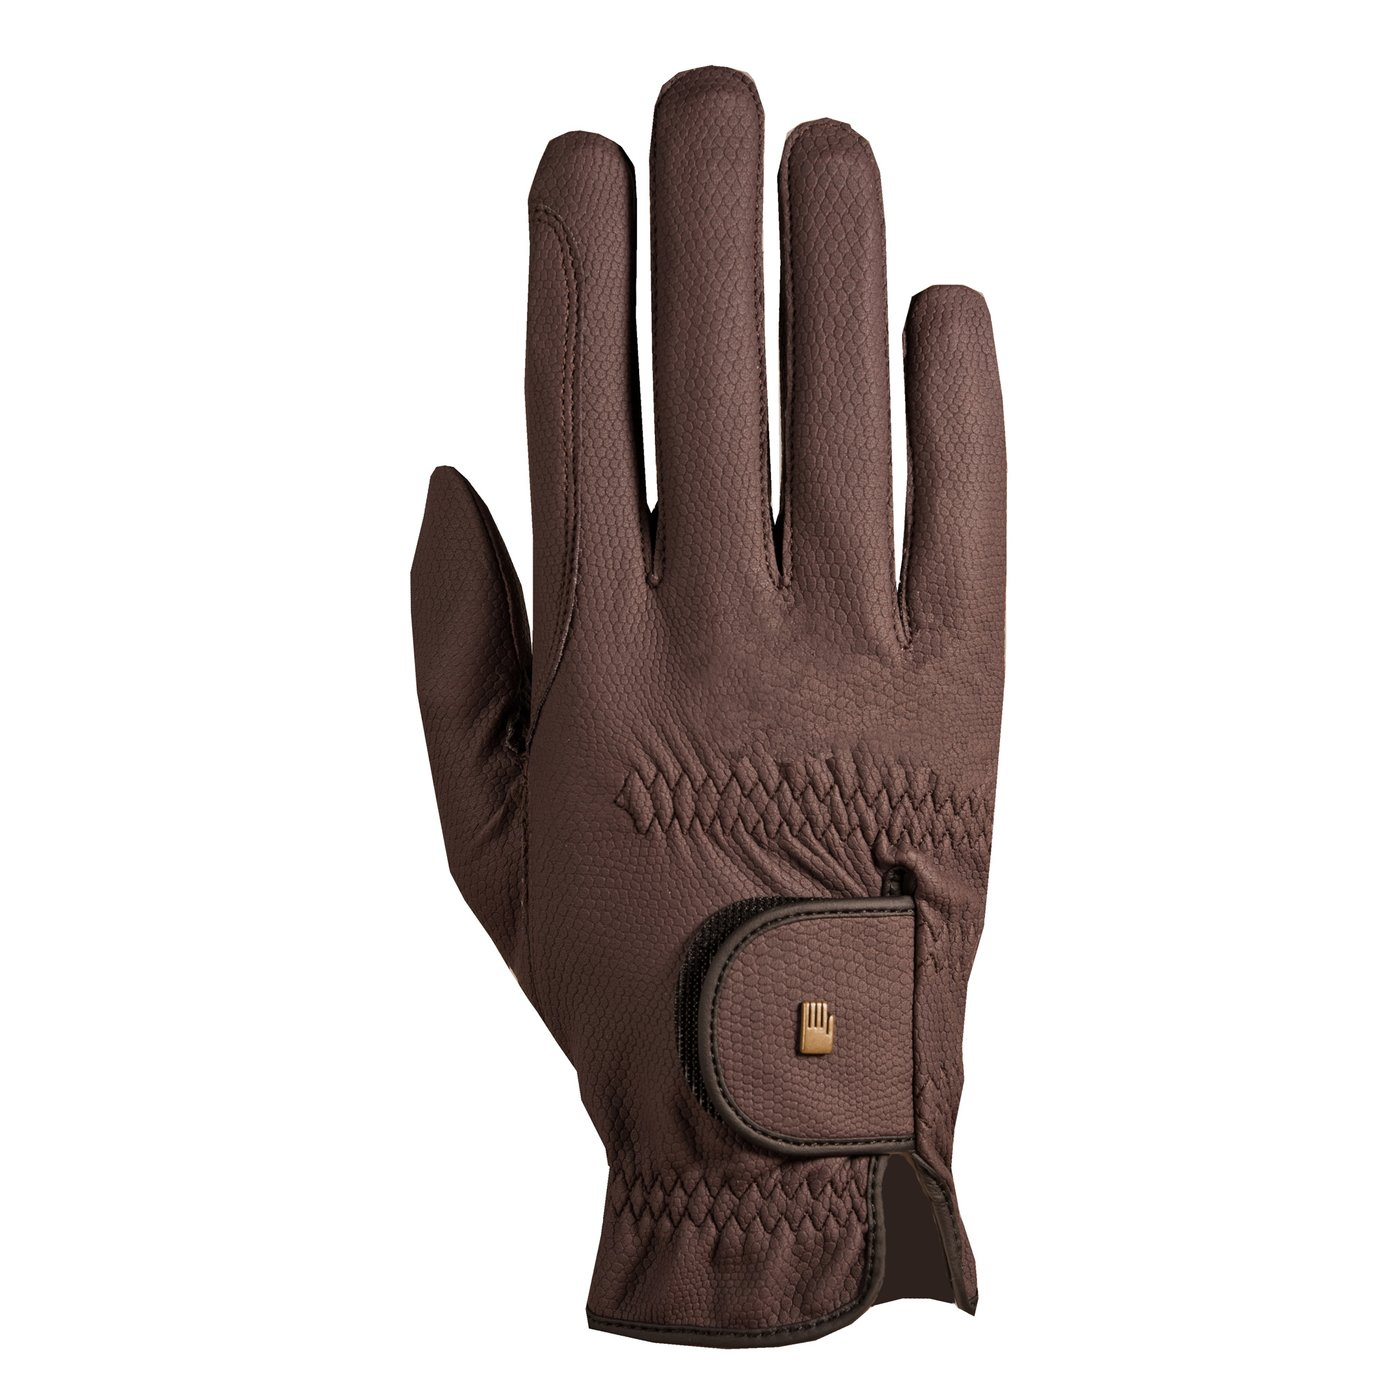 Roeckl Chester Grip Gloves - Mocha